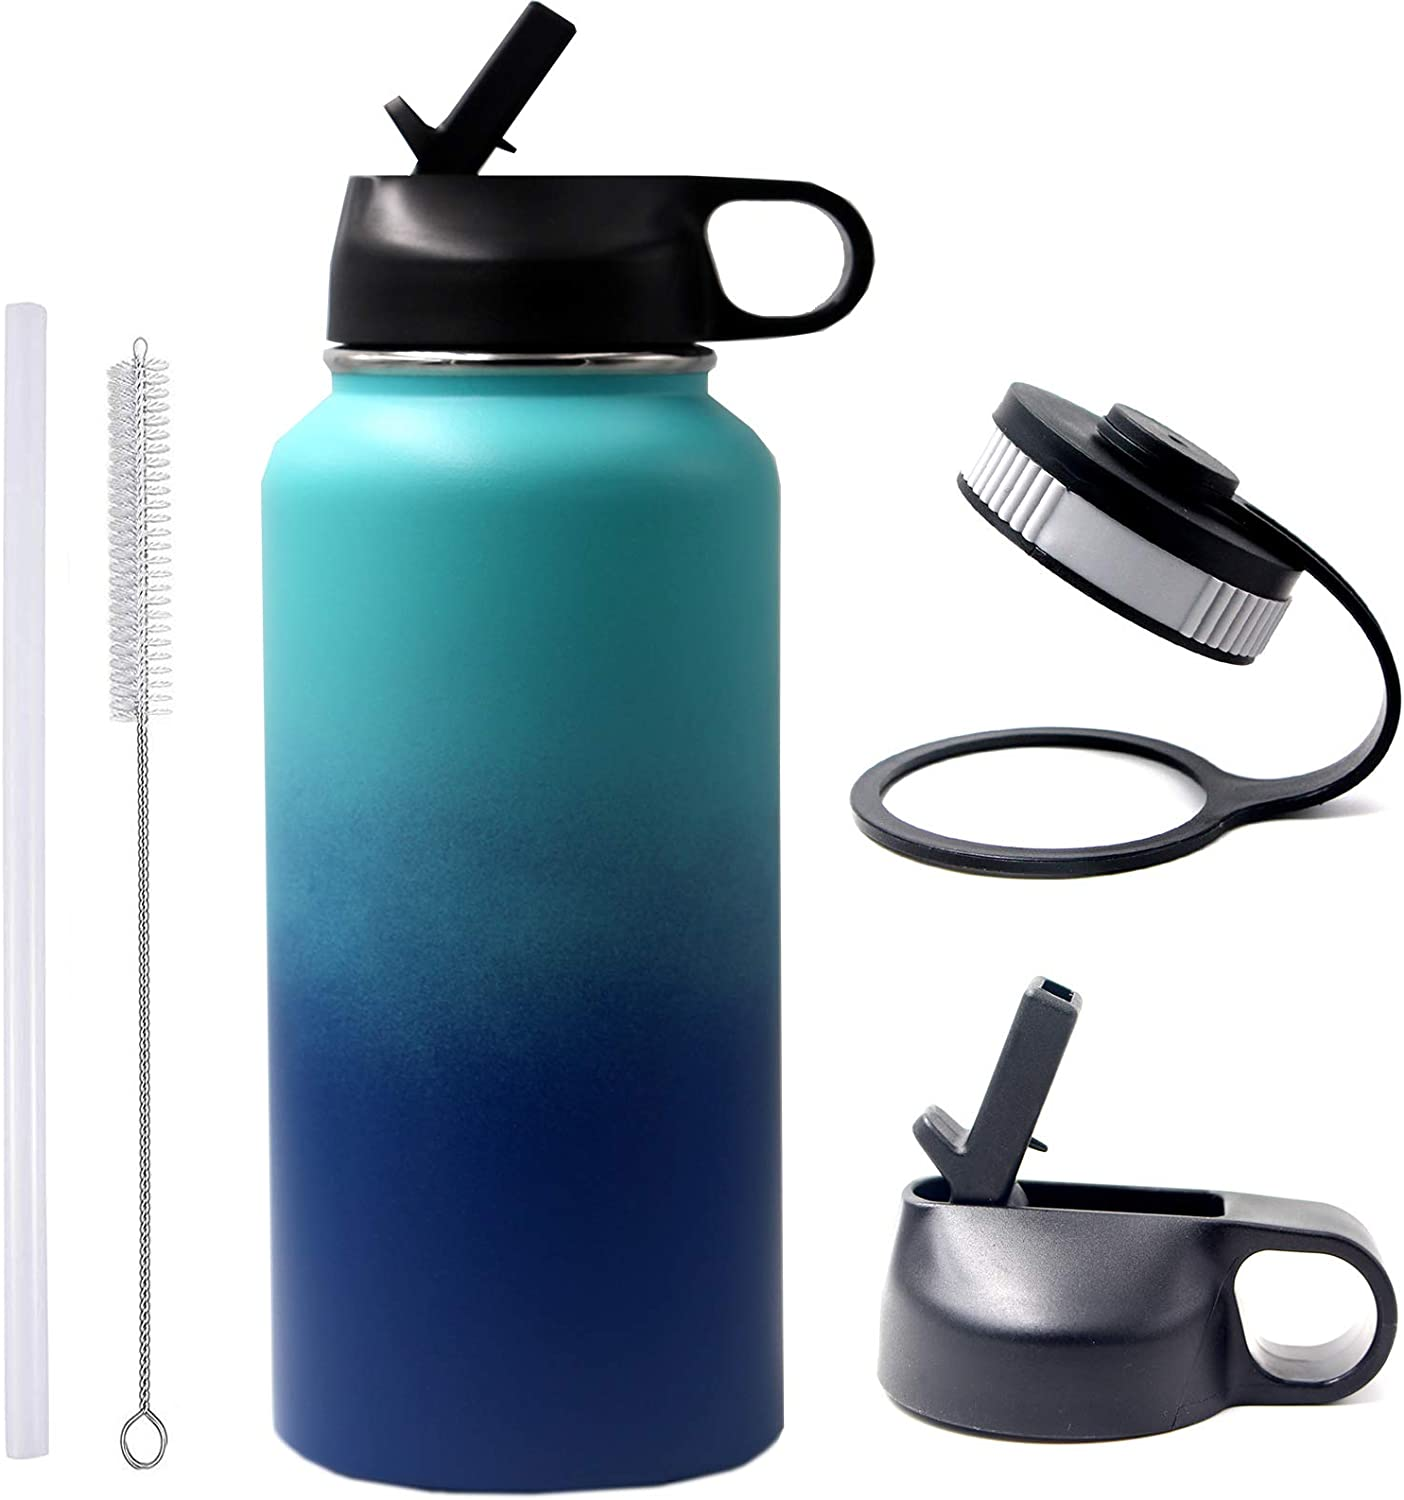 32oz, Black 32 oz Water Bottle BPA Free Metal Bottle with 2 Lids 18//8 Stainless Steel Tumbler Double Wall Vacuum Insulated Hot//Cold Outdoor Flask